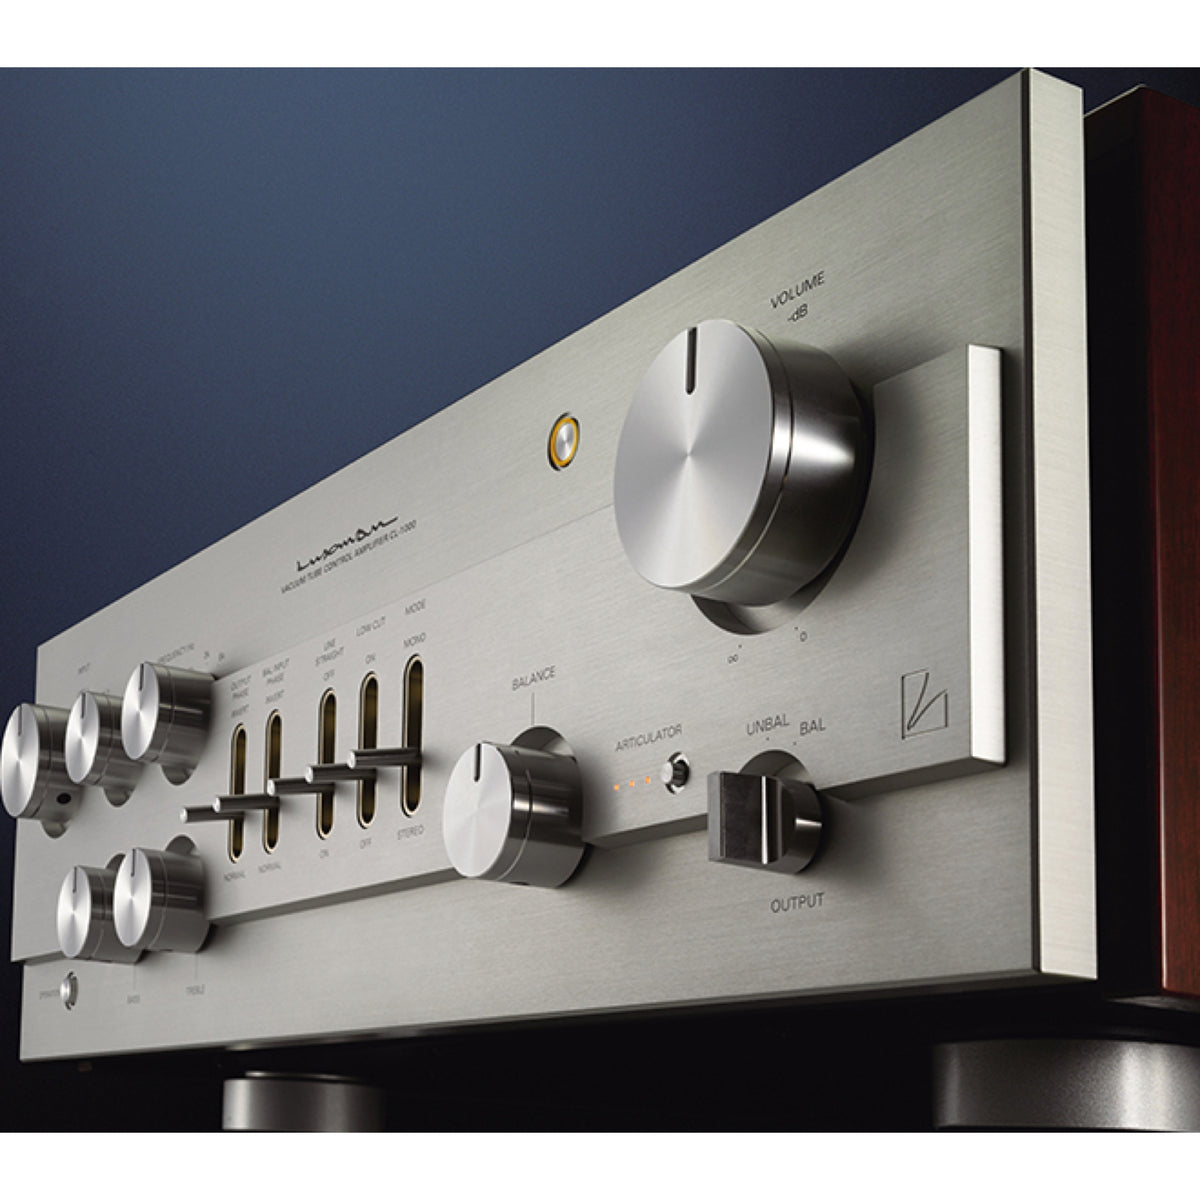 CL-1000 Tube Preamplifier